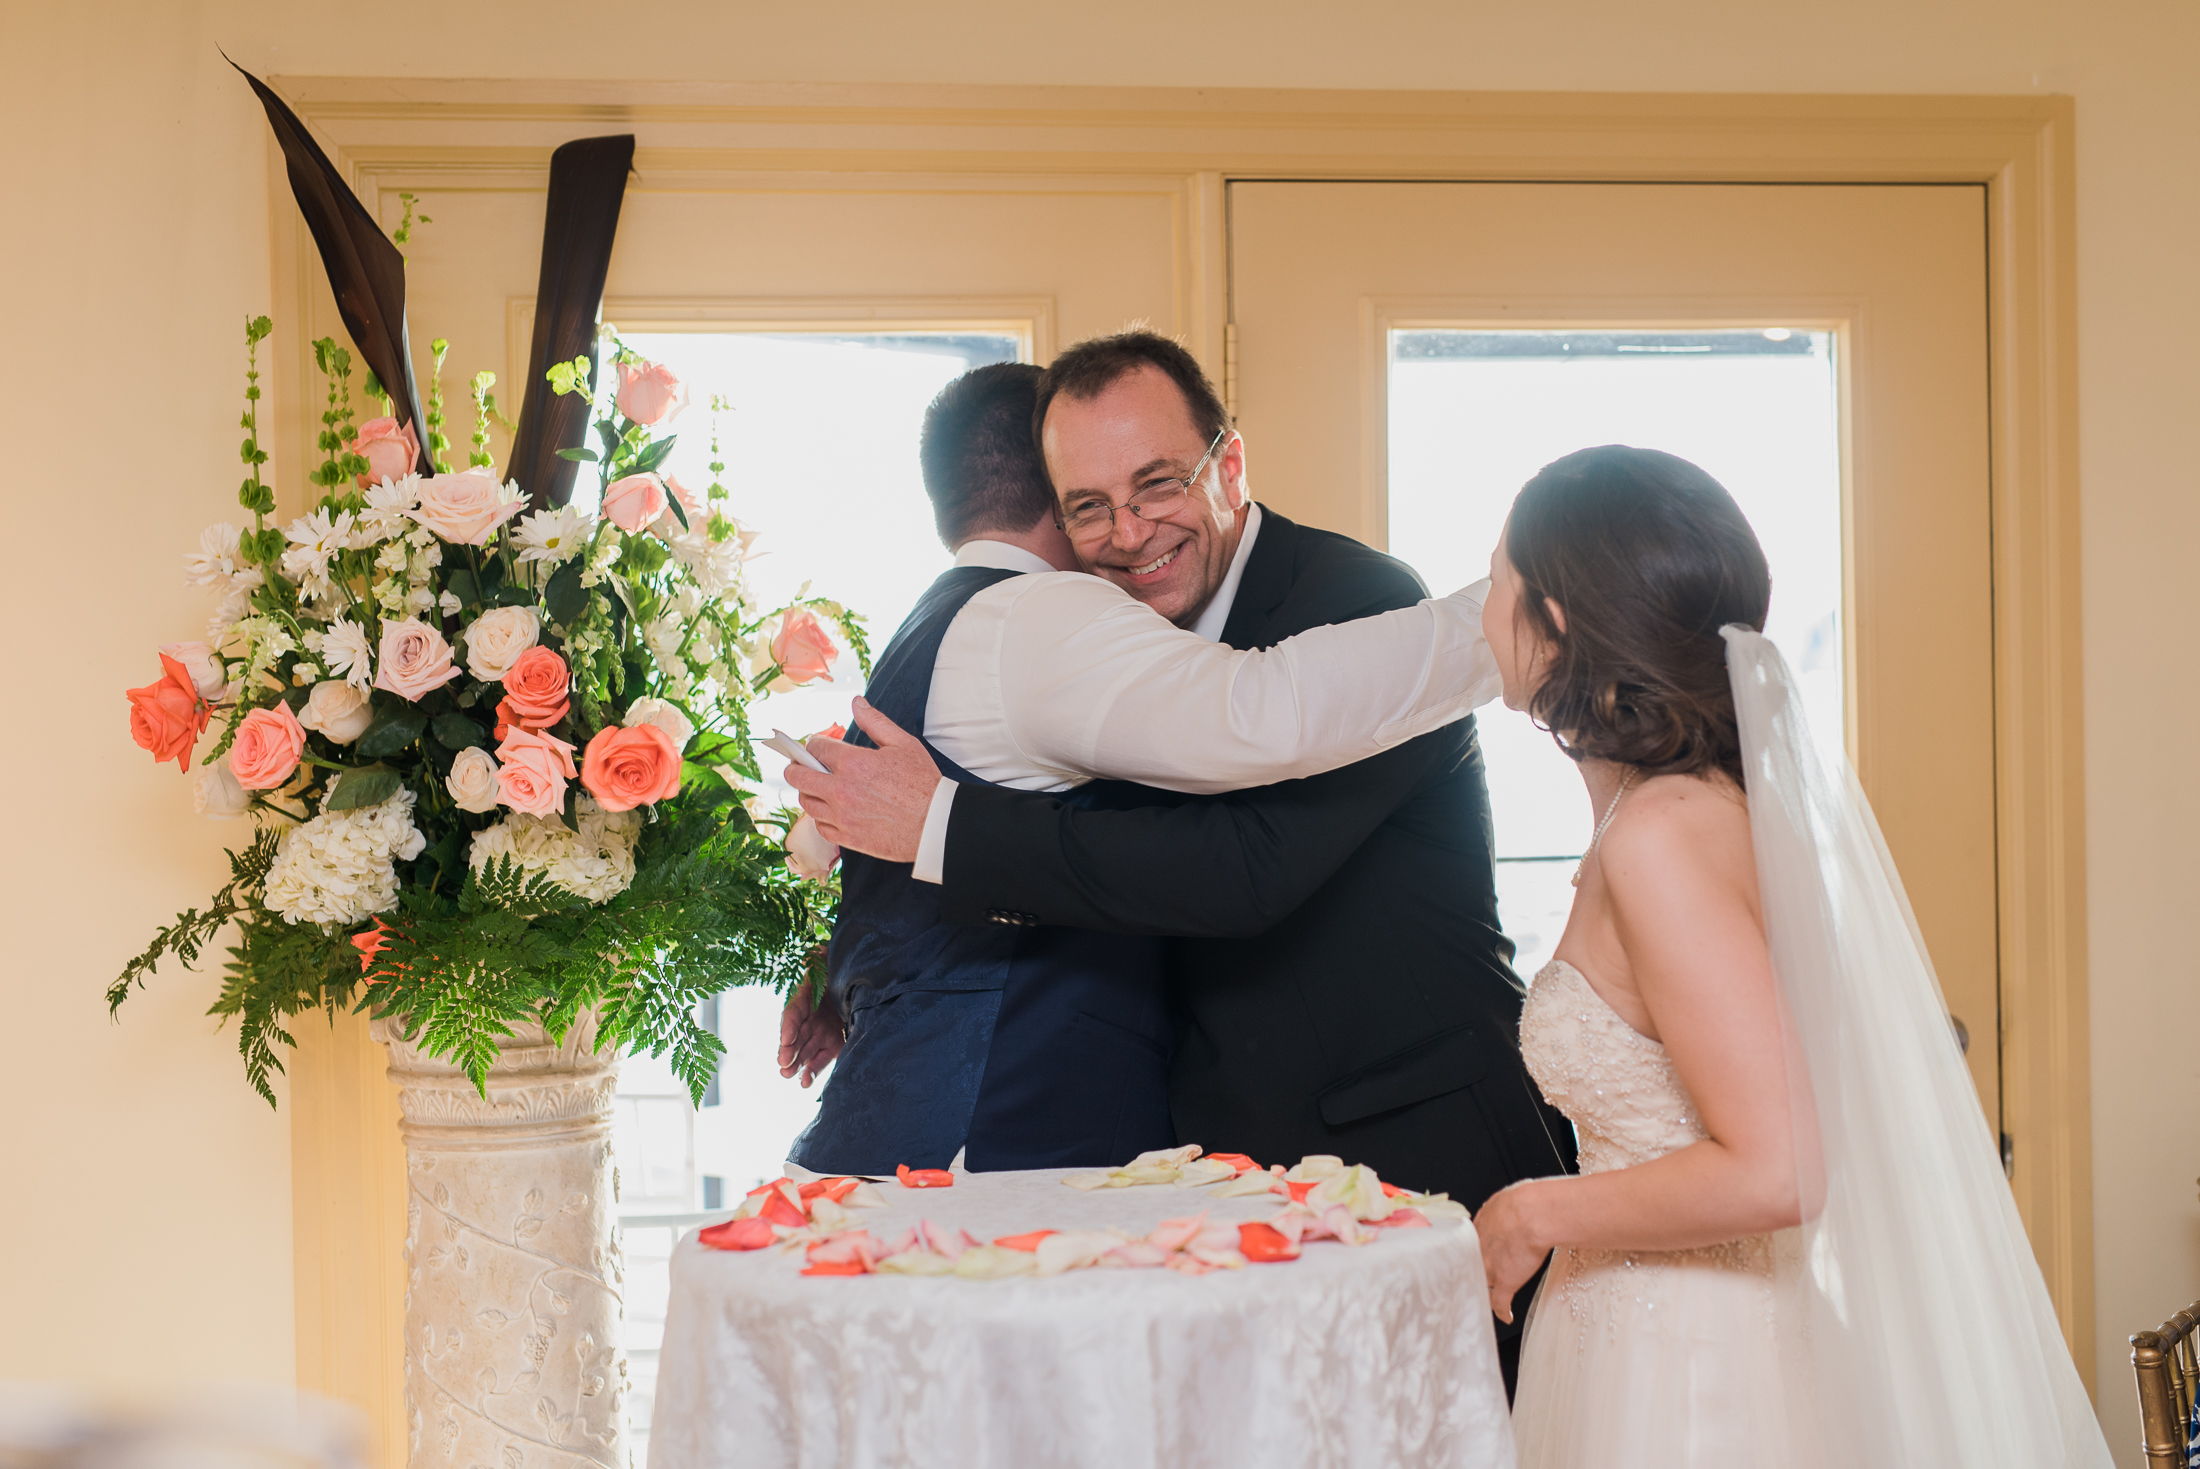 pickering_lakehouse_wedding_durham_region184